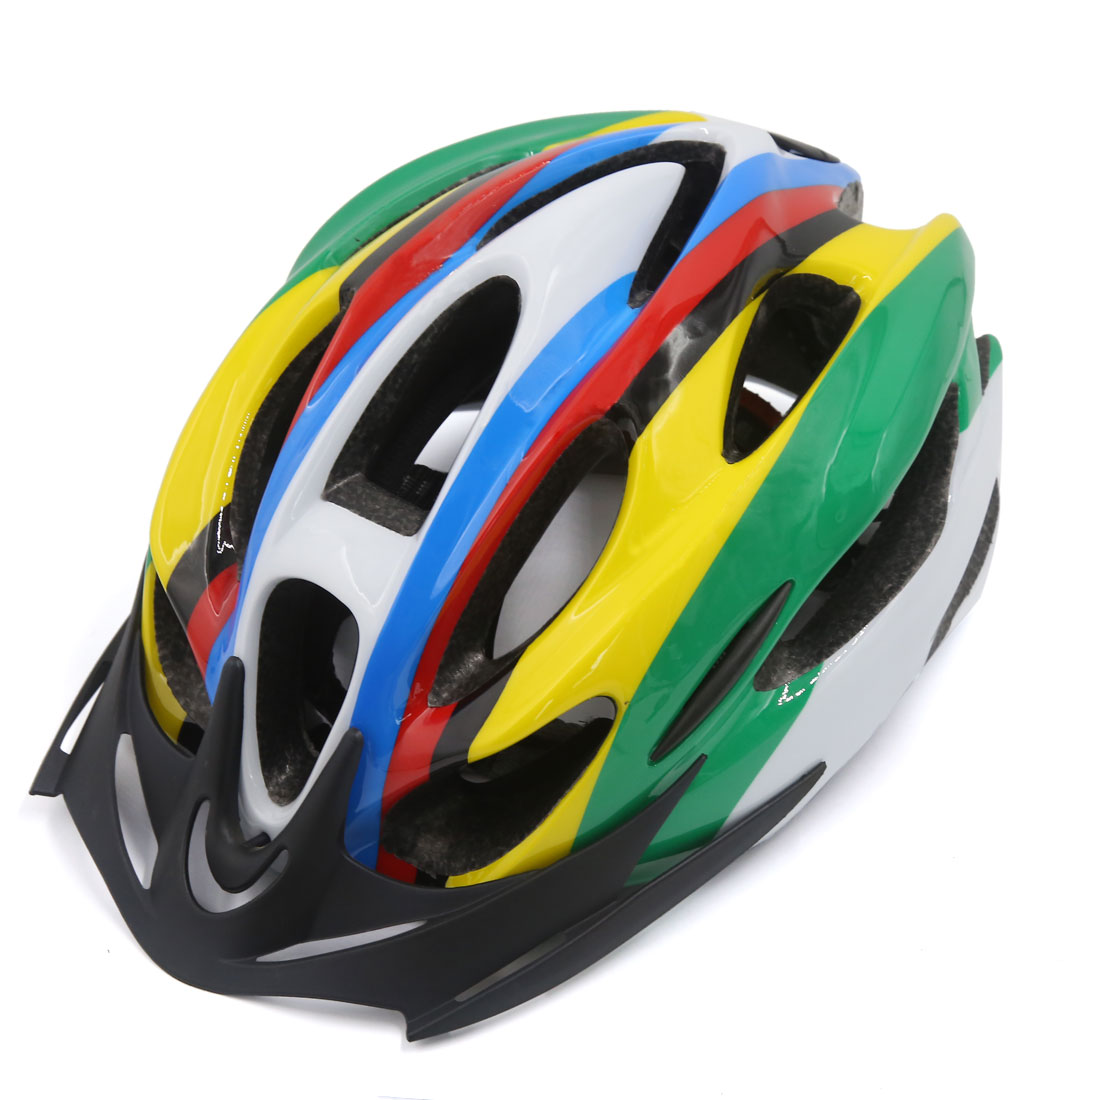 Colorful 15 Vents EPS Outdoor Mountain Bicycle Helmet w Visor for 54-62cm Head